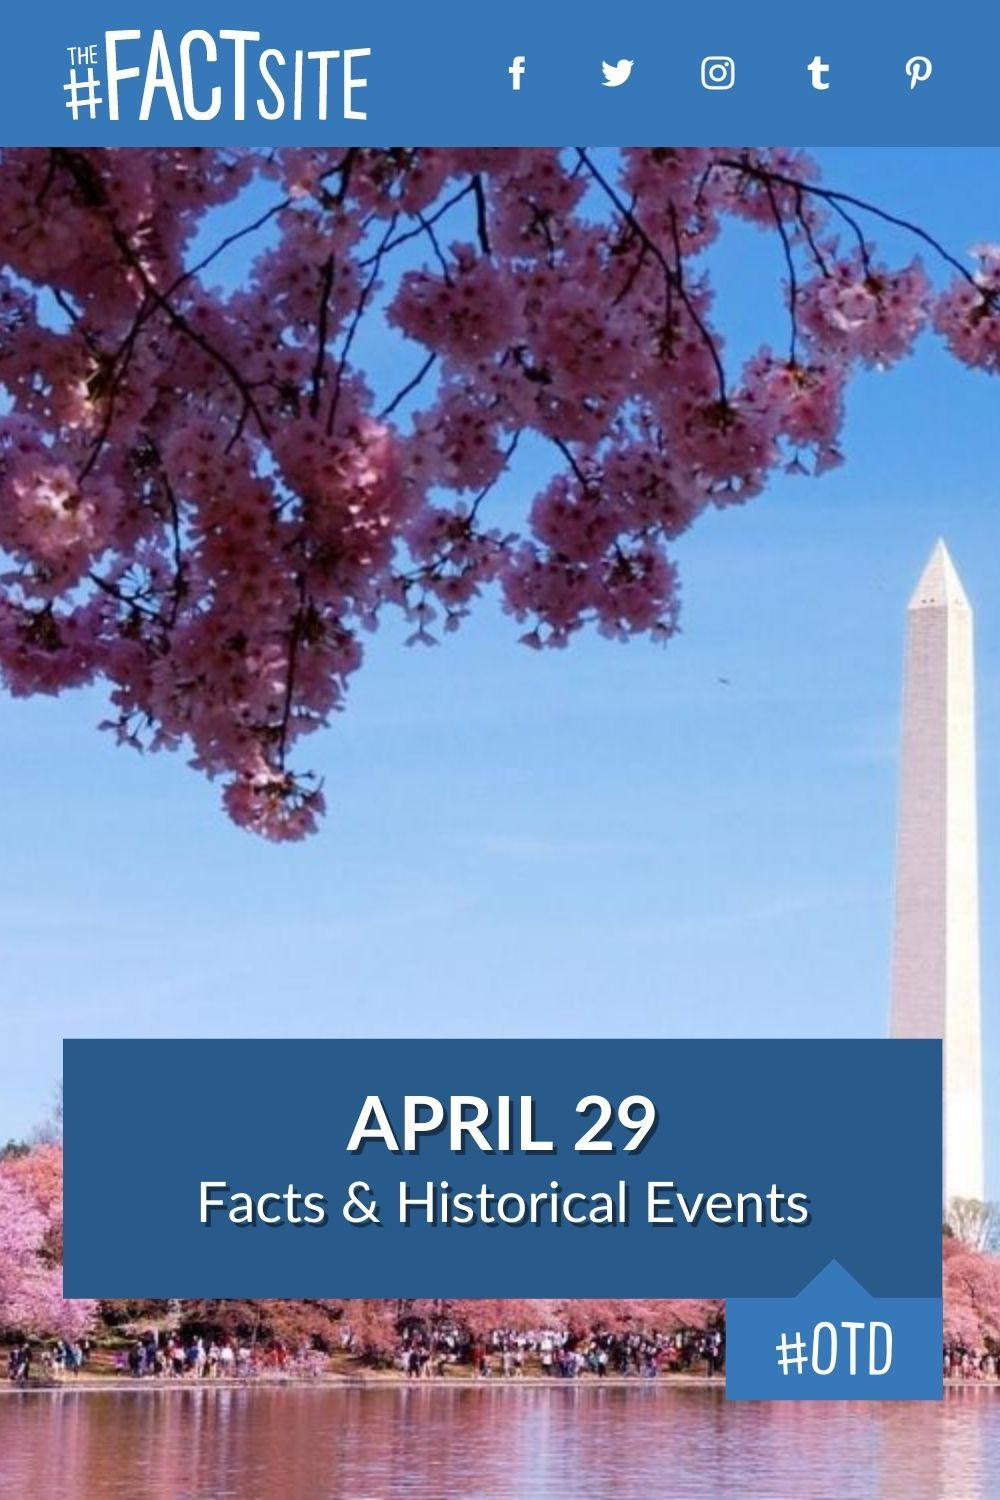 Facts & Historic Events That Happened on April 29